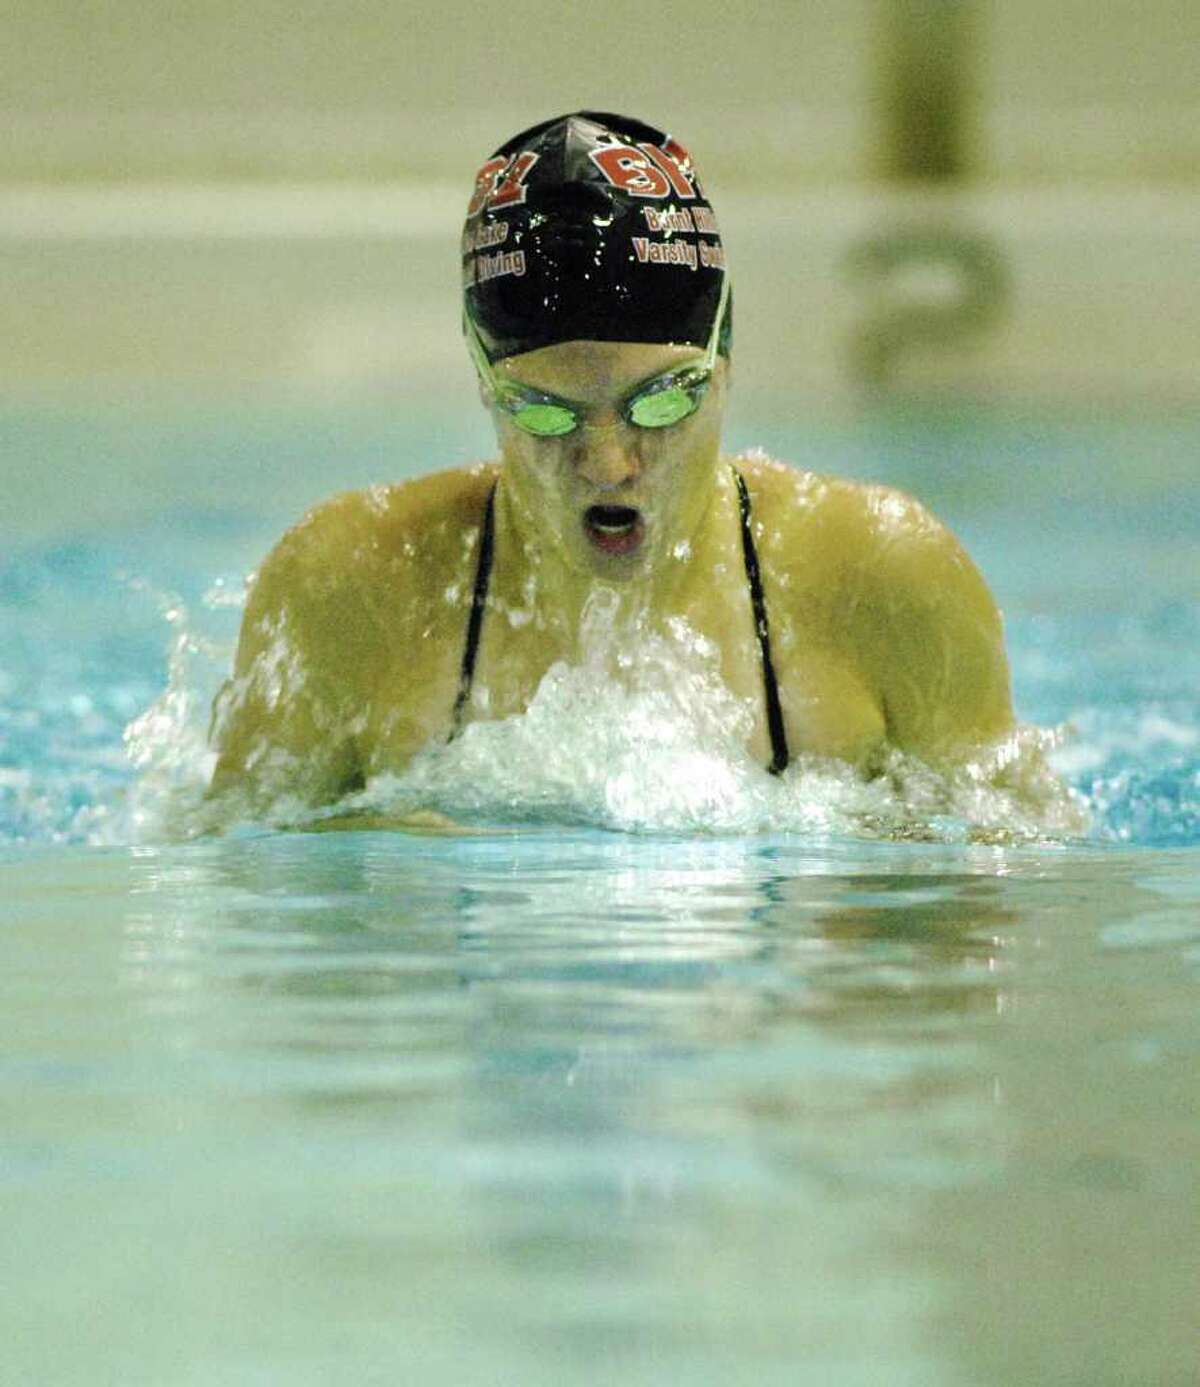 High school fall sports - Senior Kelly Ludeke performs the breaststroke during girls swim team practice at Burnt Hills-Ballston Lake High School in Burnt Hills on Wednesday, Aug. 25. The team has won four straight Class B sectional titles. (Paul Buckowski / Times Union)